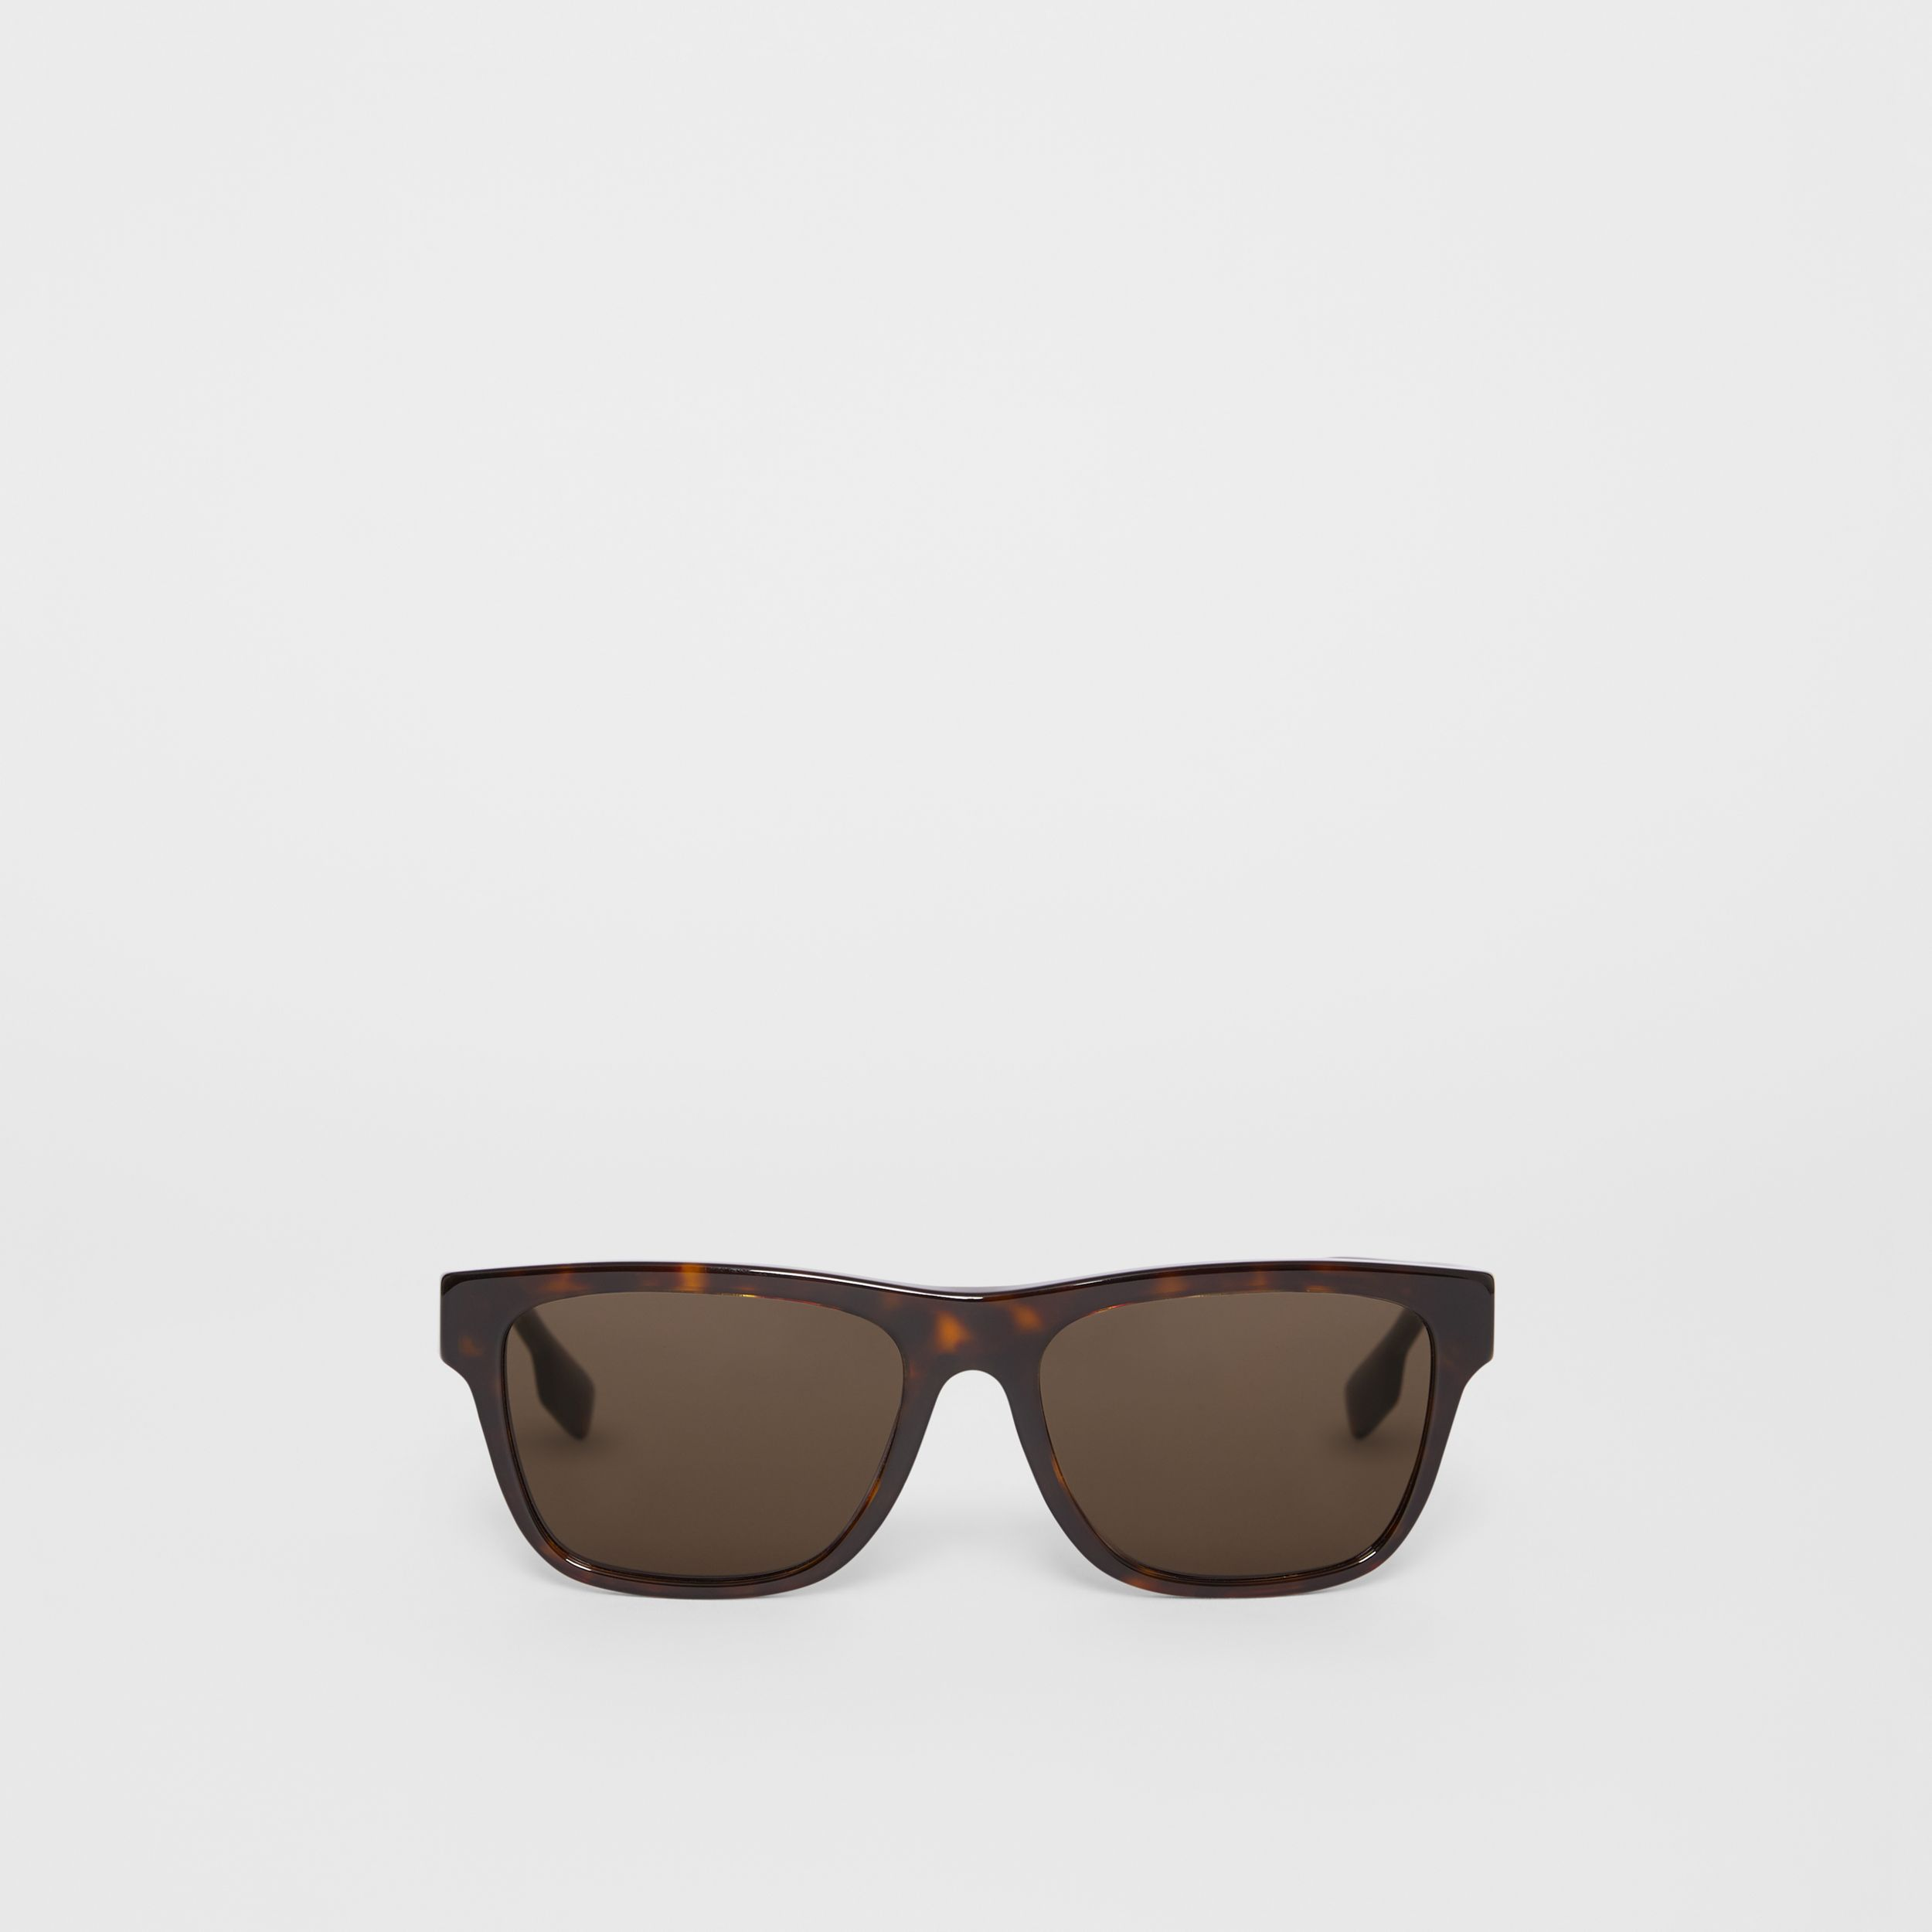 Square Frame Sunglasses in Tortoiseshell - Men | Burberry - 1